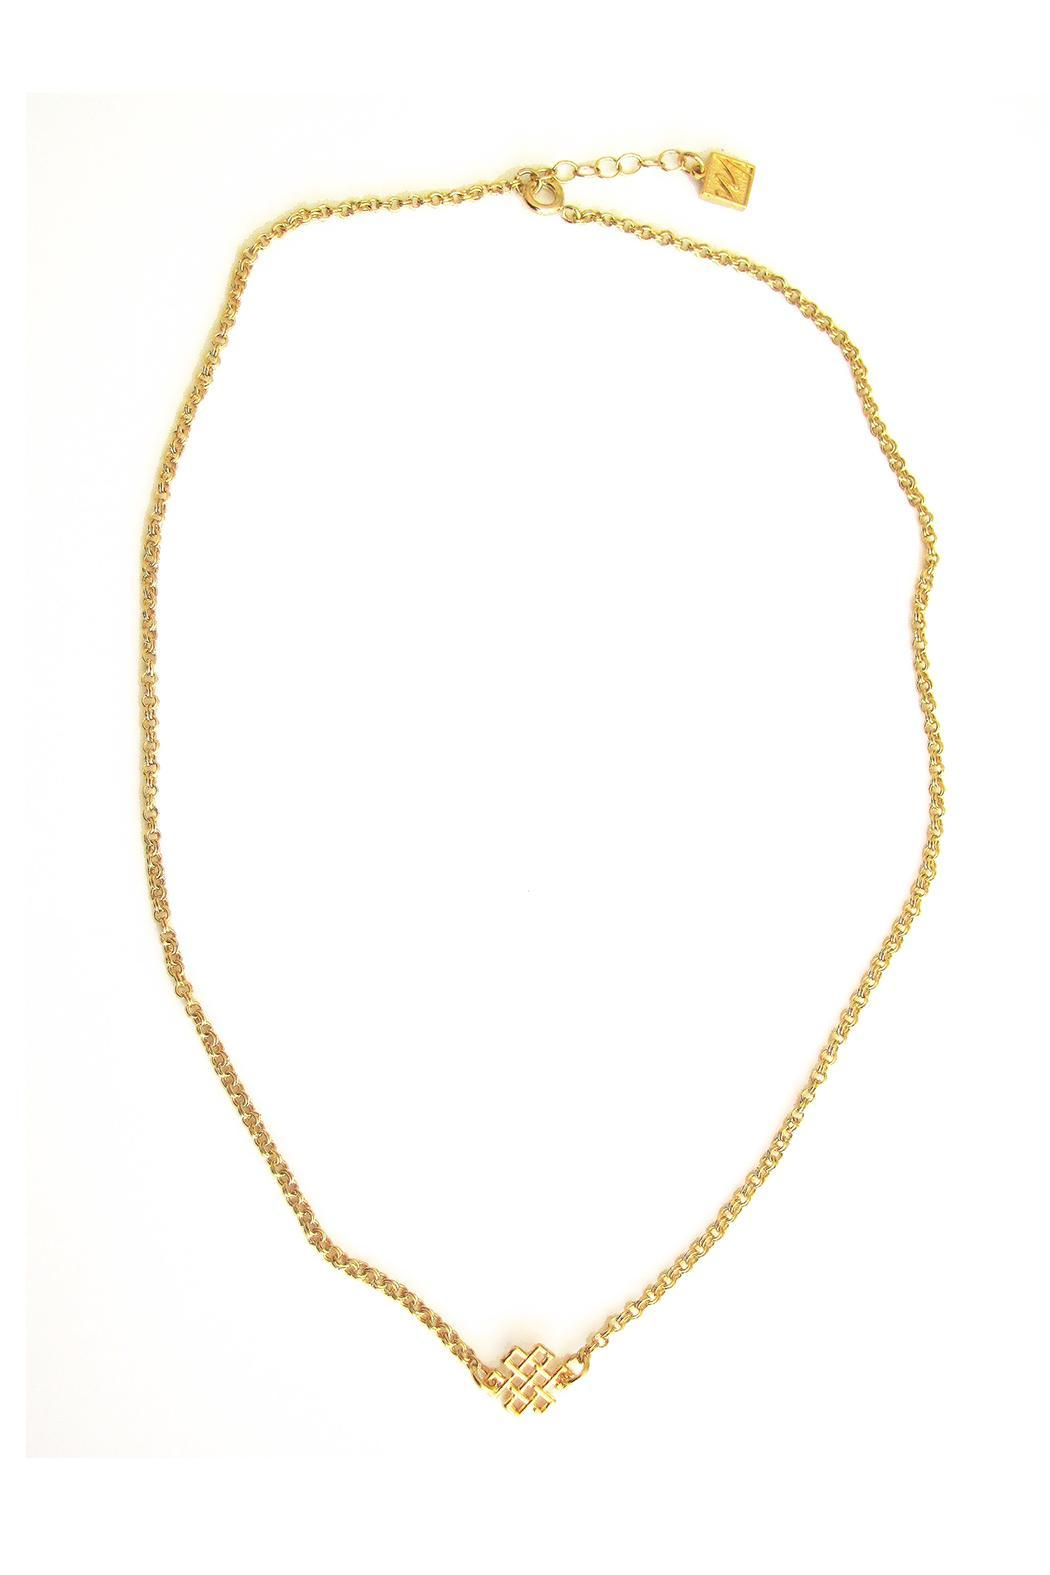 Malia Jewelry Love Knot Necklace - Front Full Image